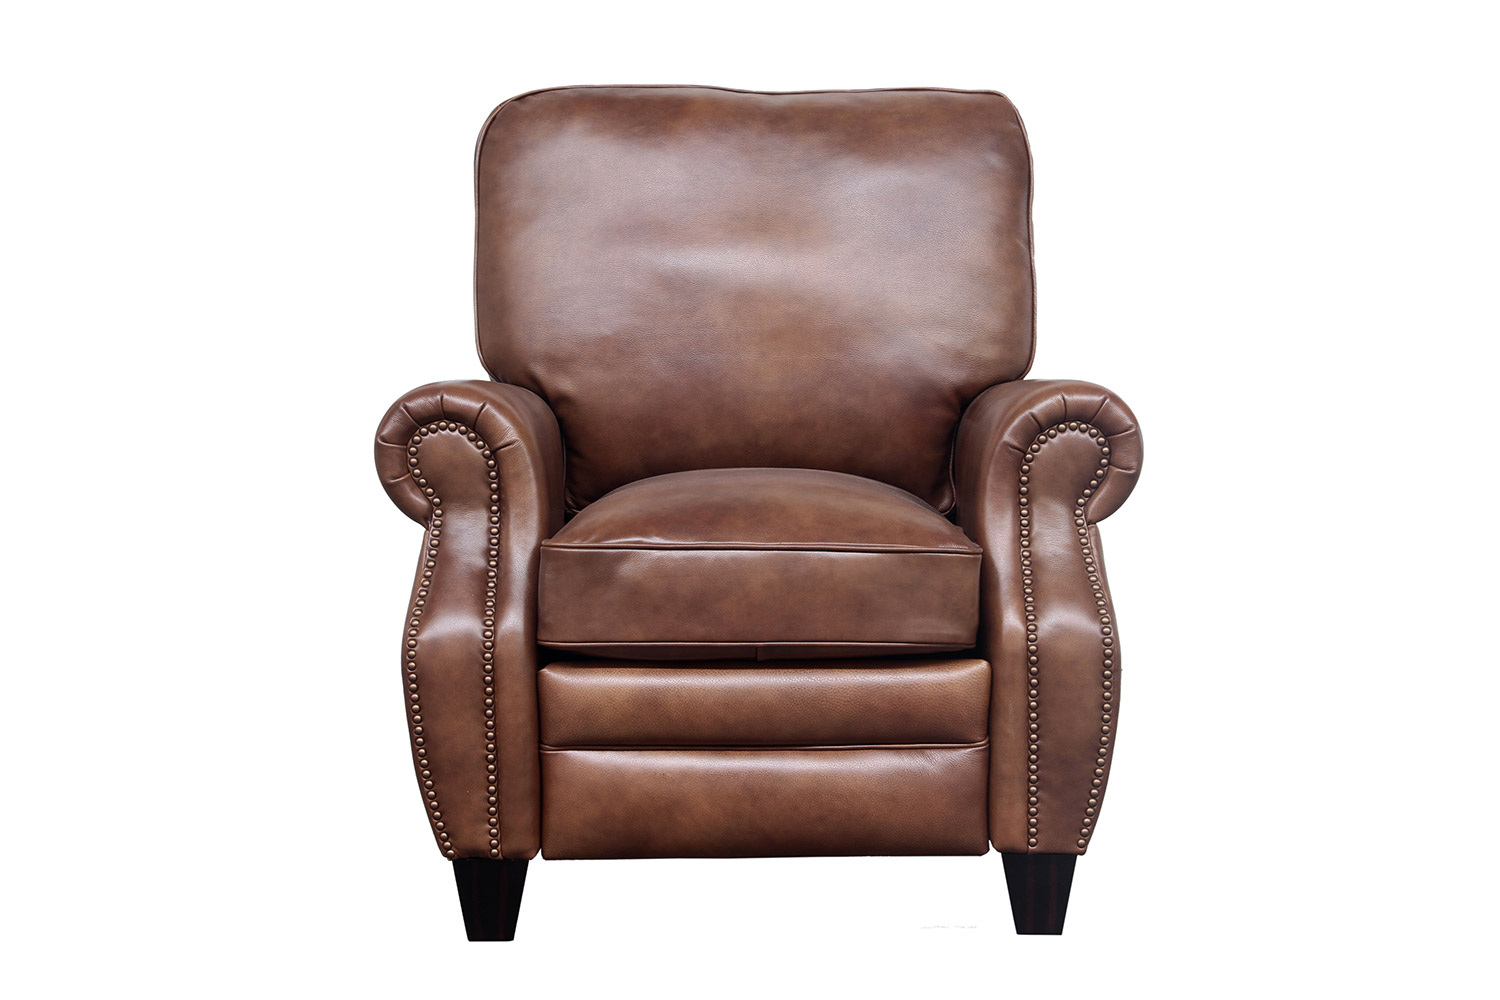 Barcalounger Briarwood Recliner Chair - Wenlock Tawny/All Leather